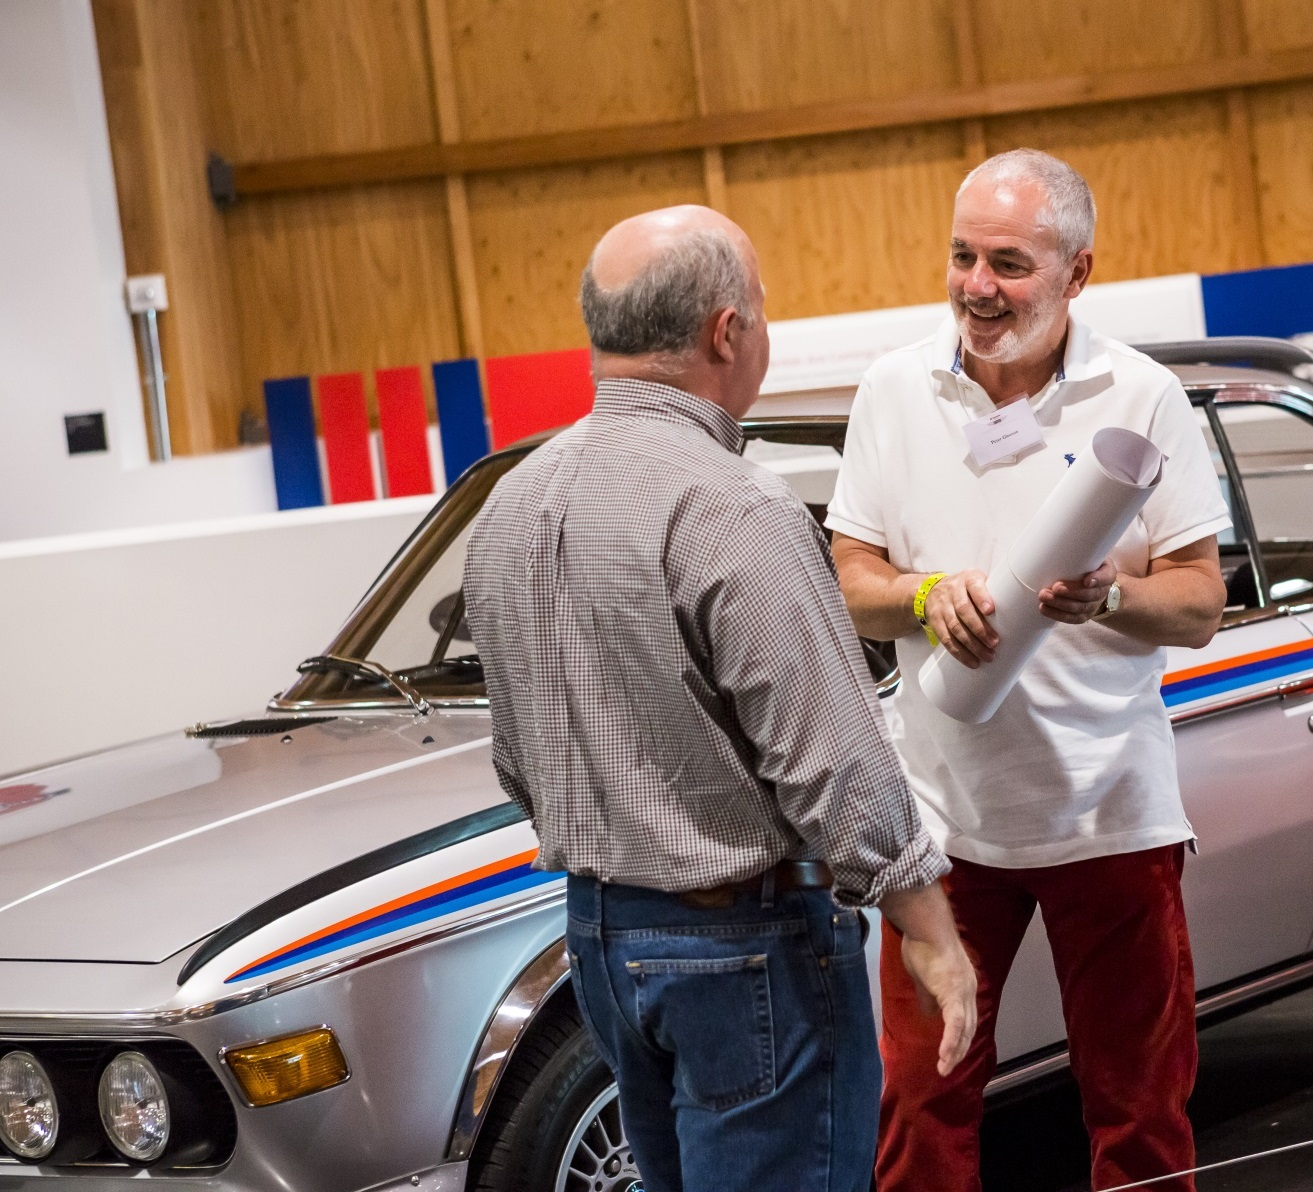 Peter Gleeson, on the right, with his 1973 BMW 3.0 CSL Batmobile in the background